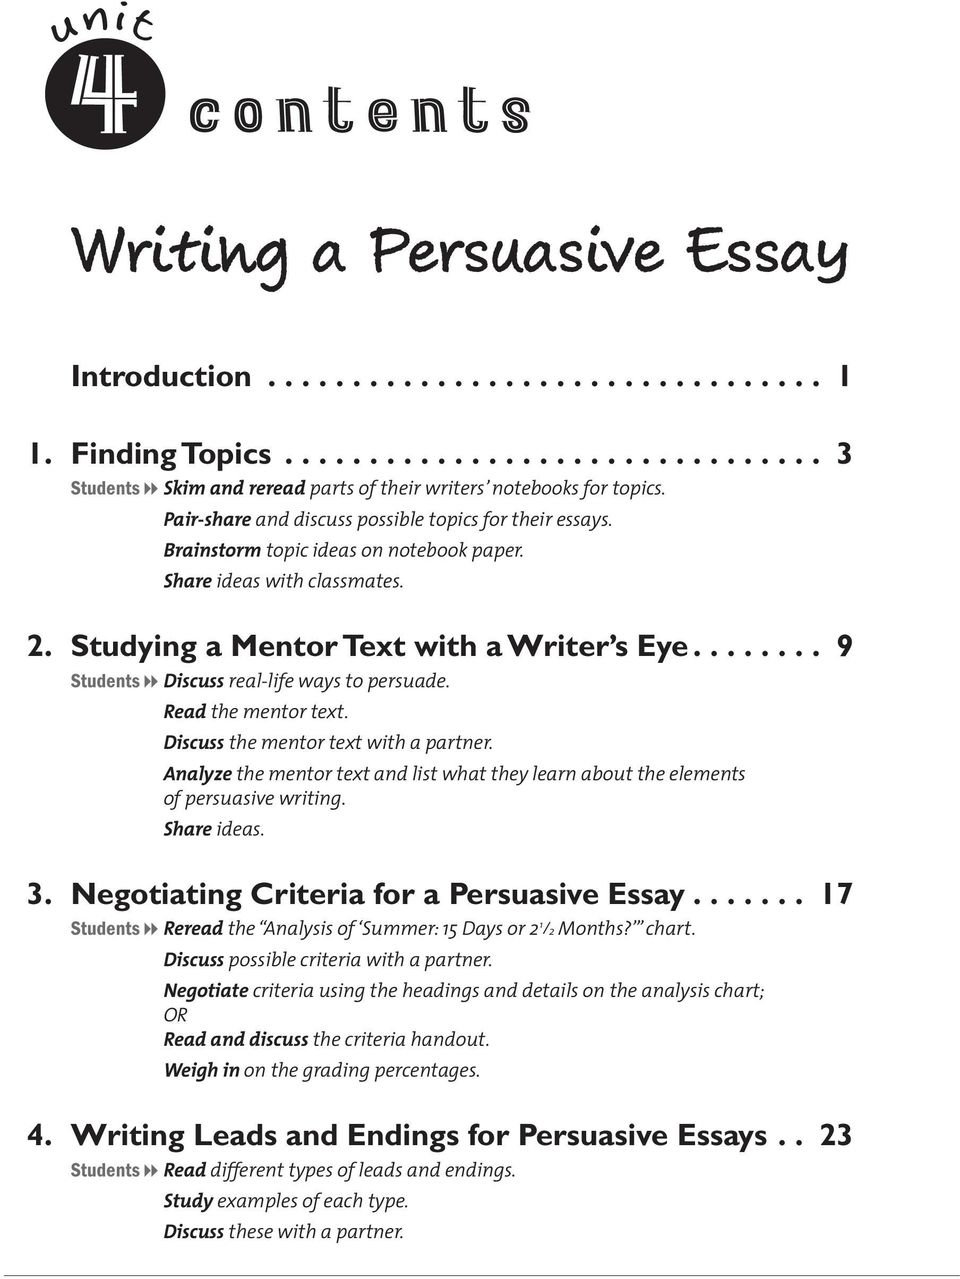 Public service commission essay summary report